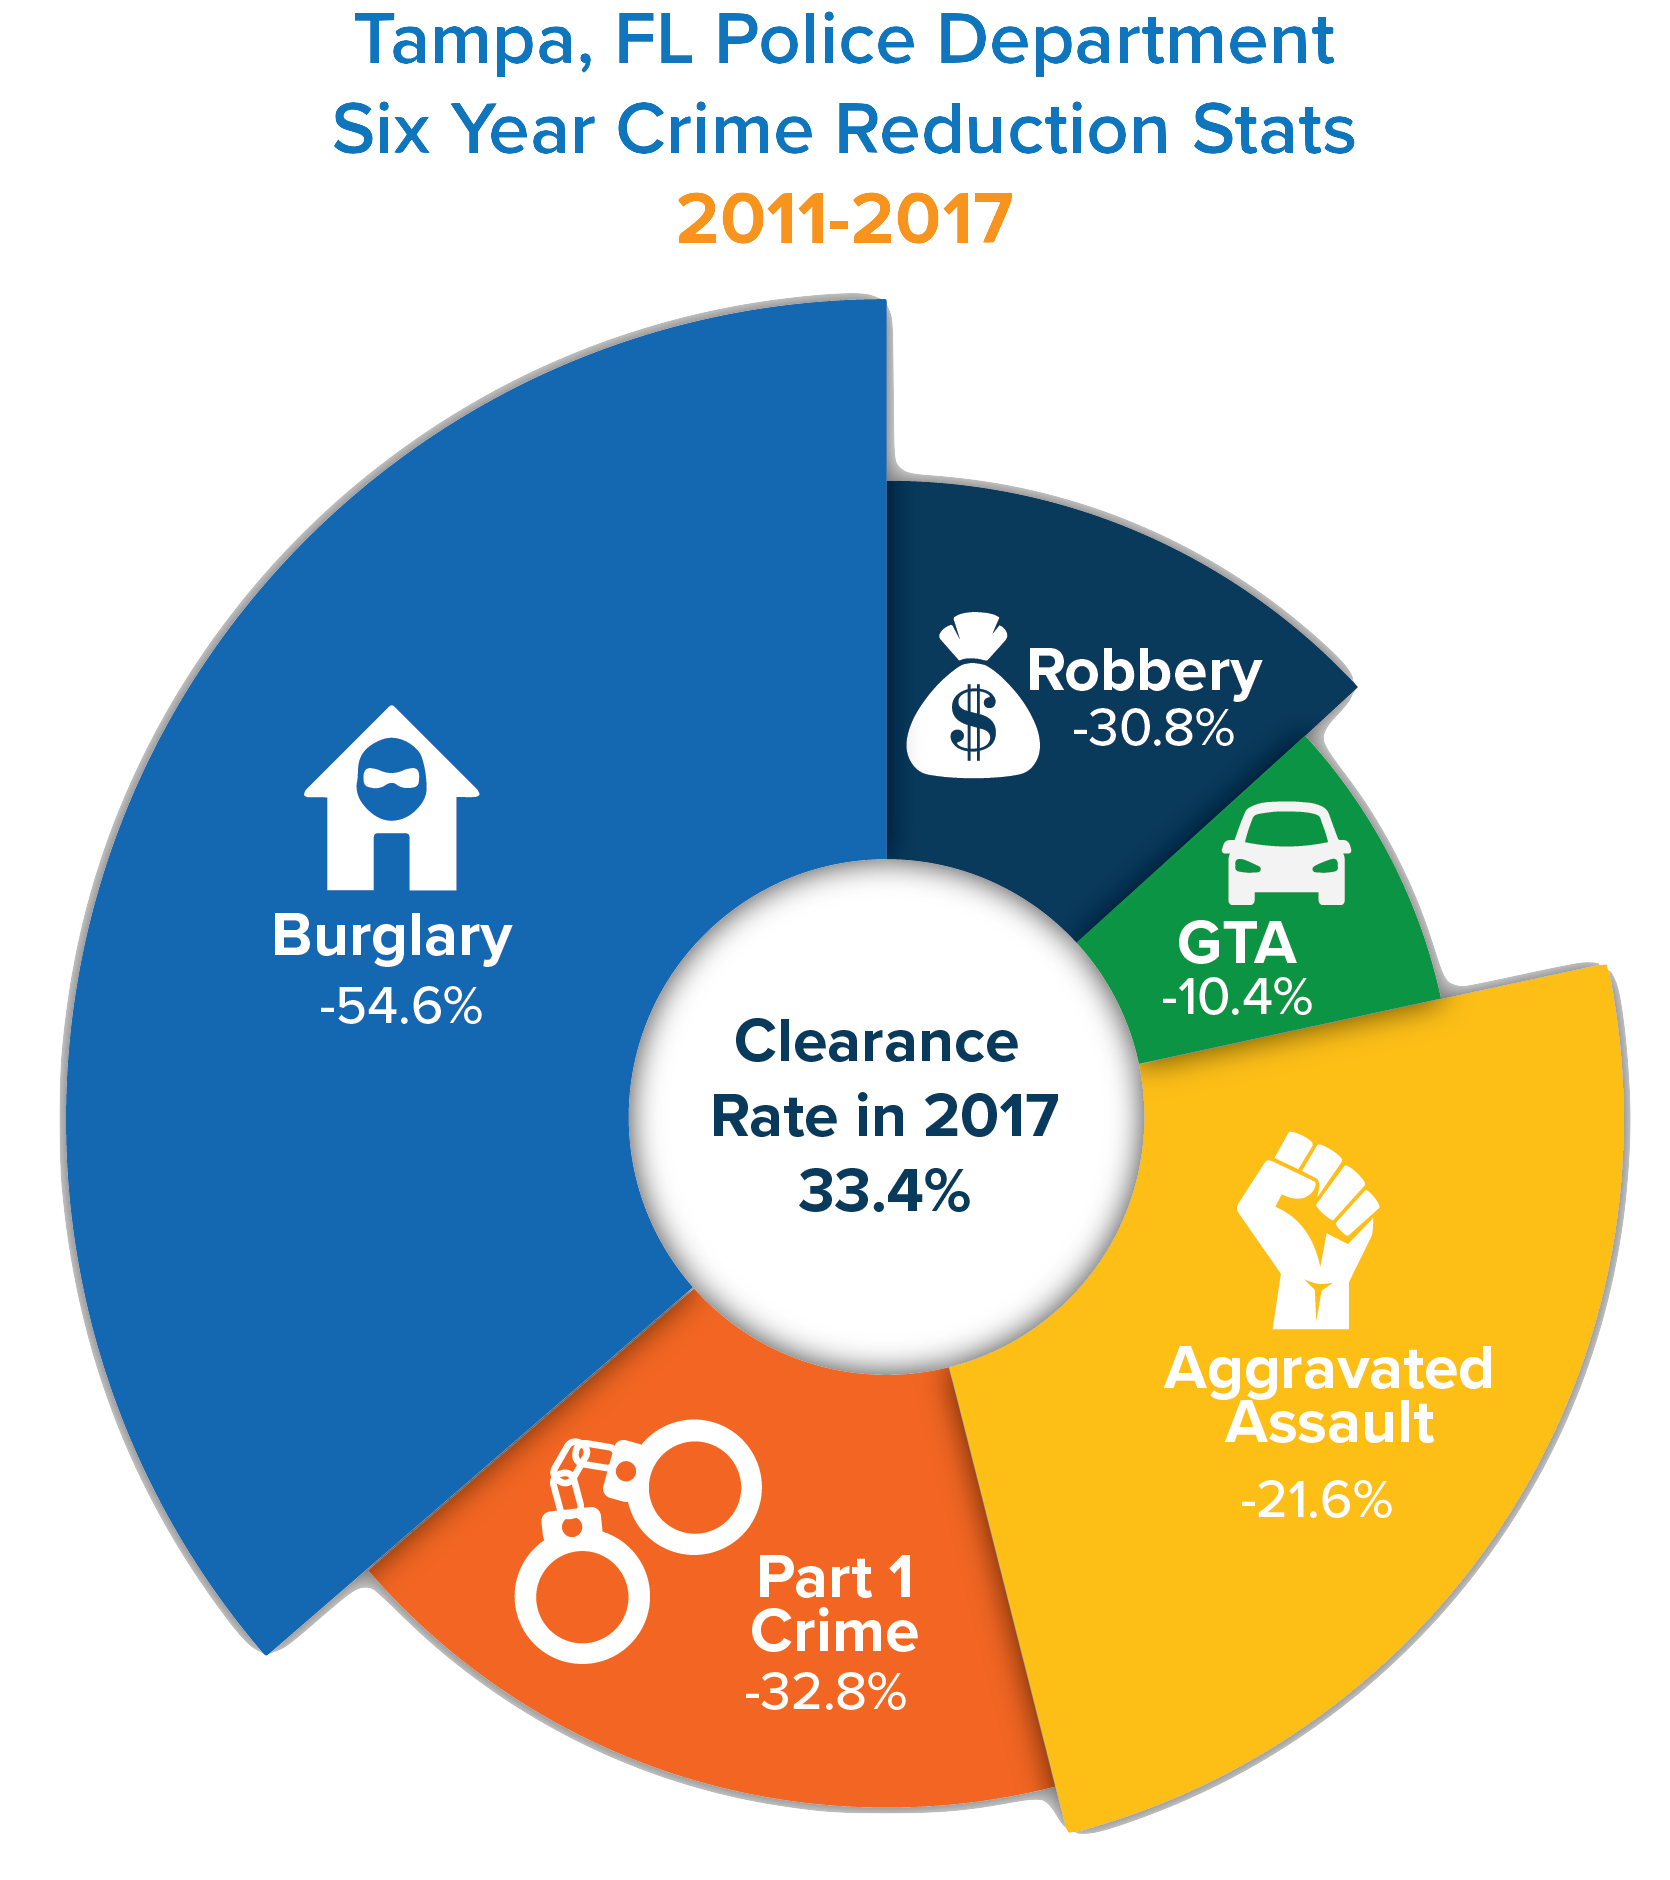 Tampa Police Dept crime stats diagram_2011_2017 (2)